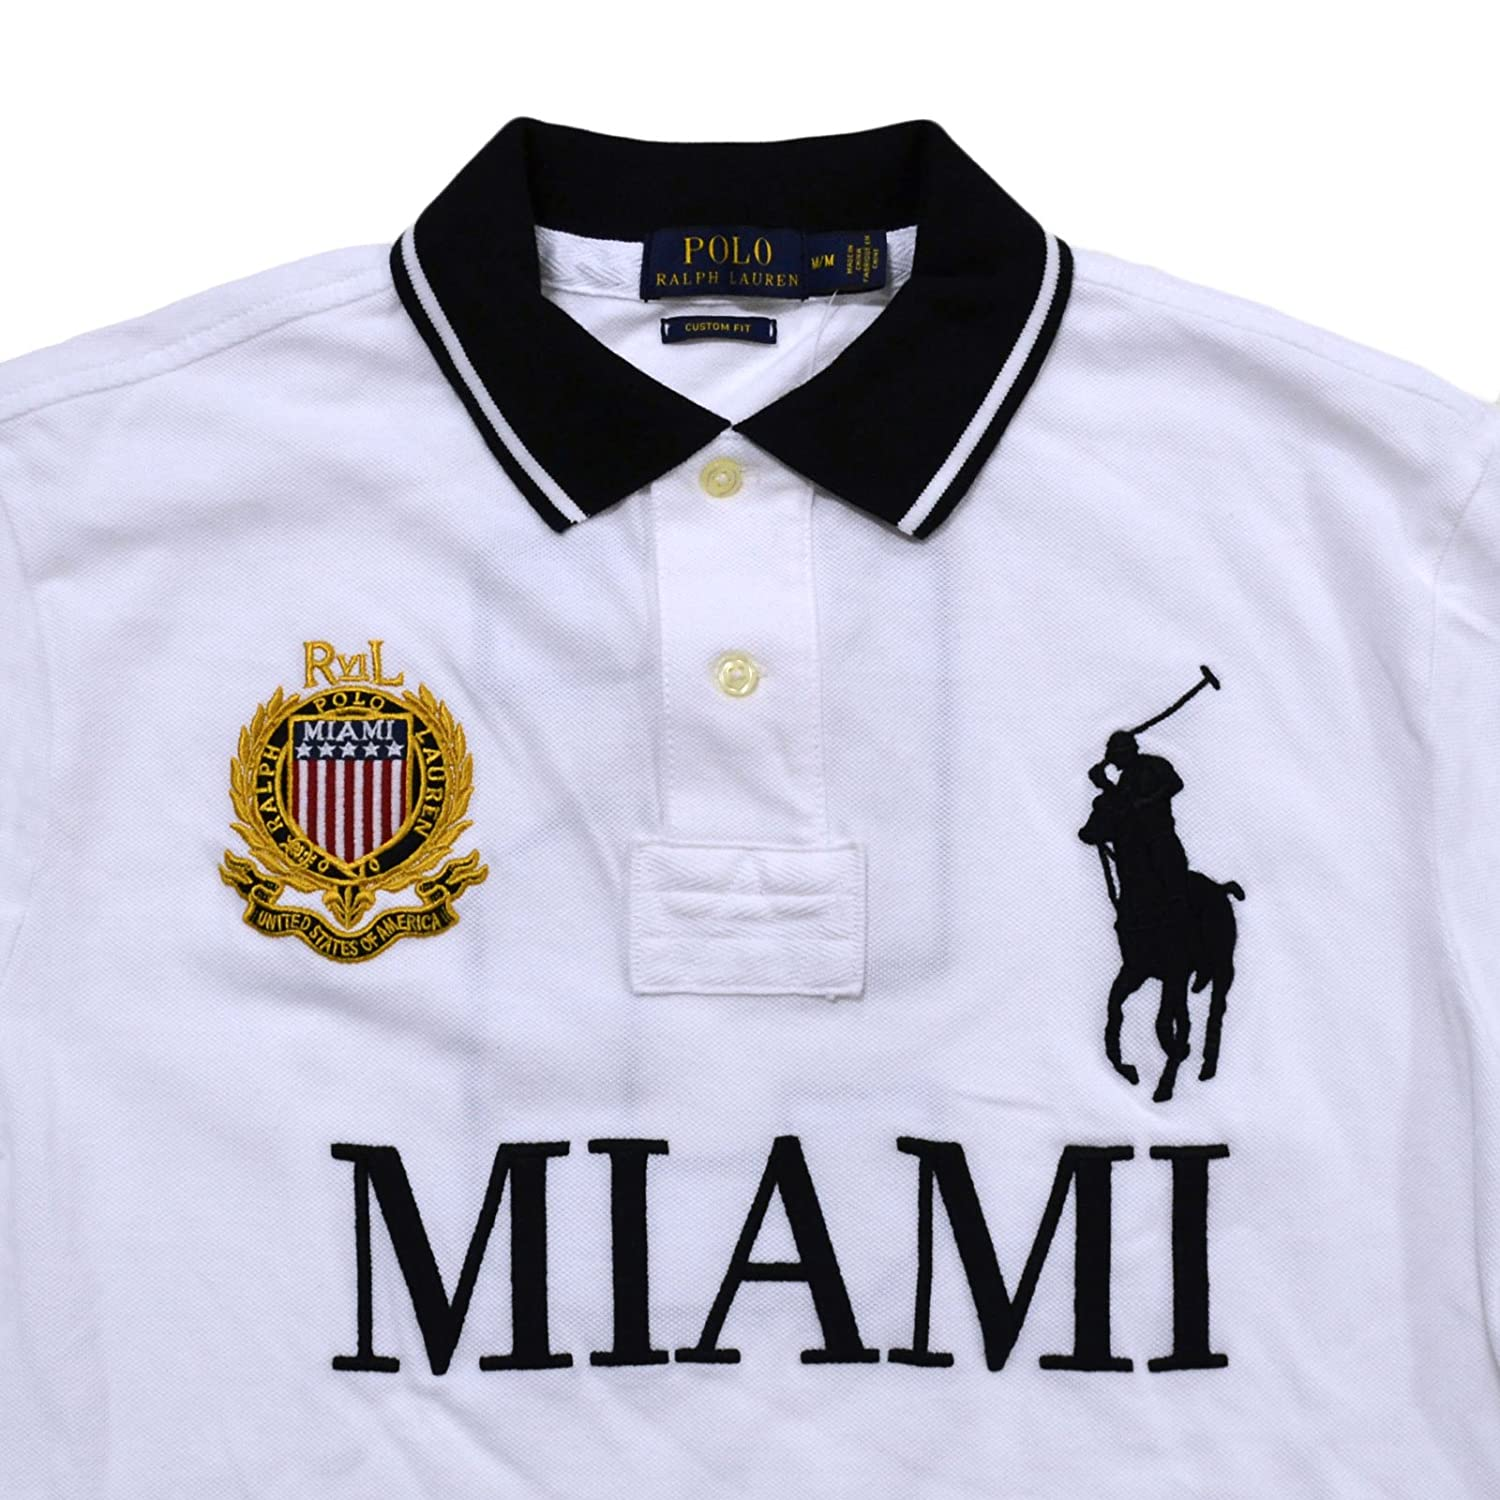 34d6fb2ed0c90 Polo Ralph Lauren Mens Big Pony City Custom Fit Mesh Polo Shirt at Amazon  Men s Clothing